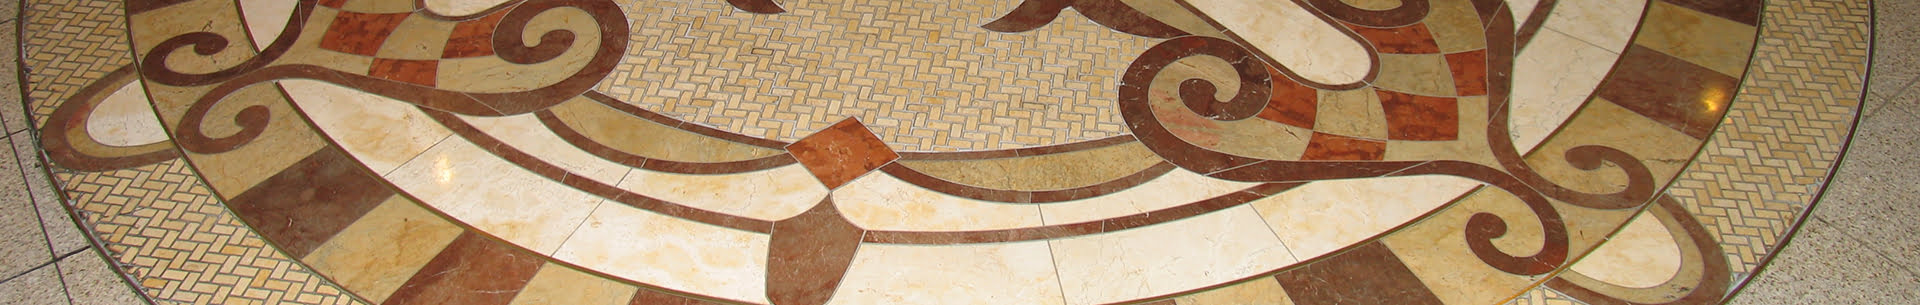 custommosaics